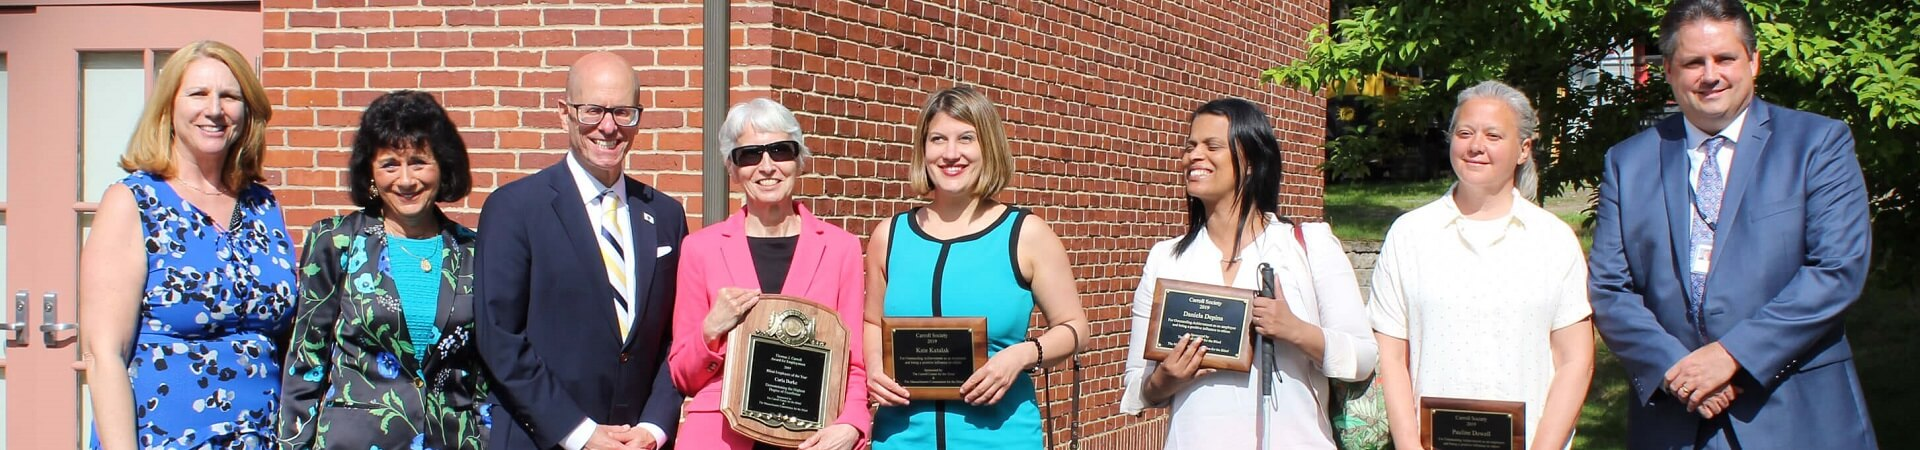 Carroll Society winners from 2019 stand together holding their awards.